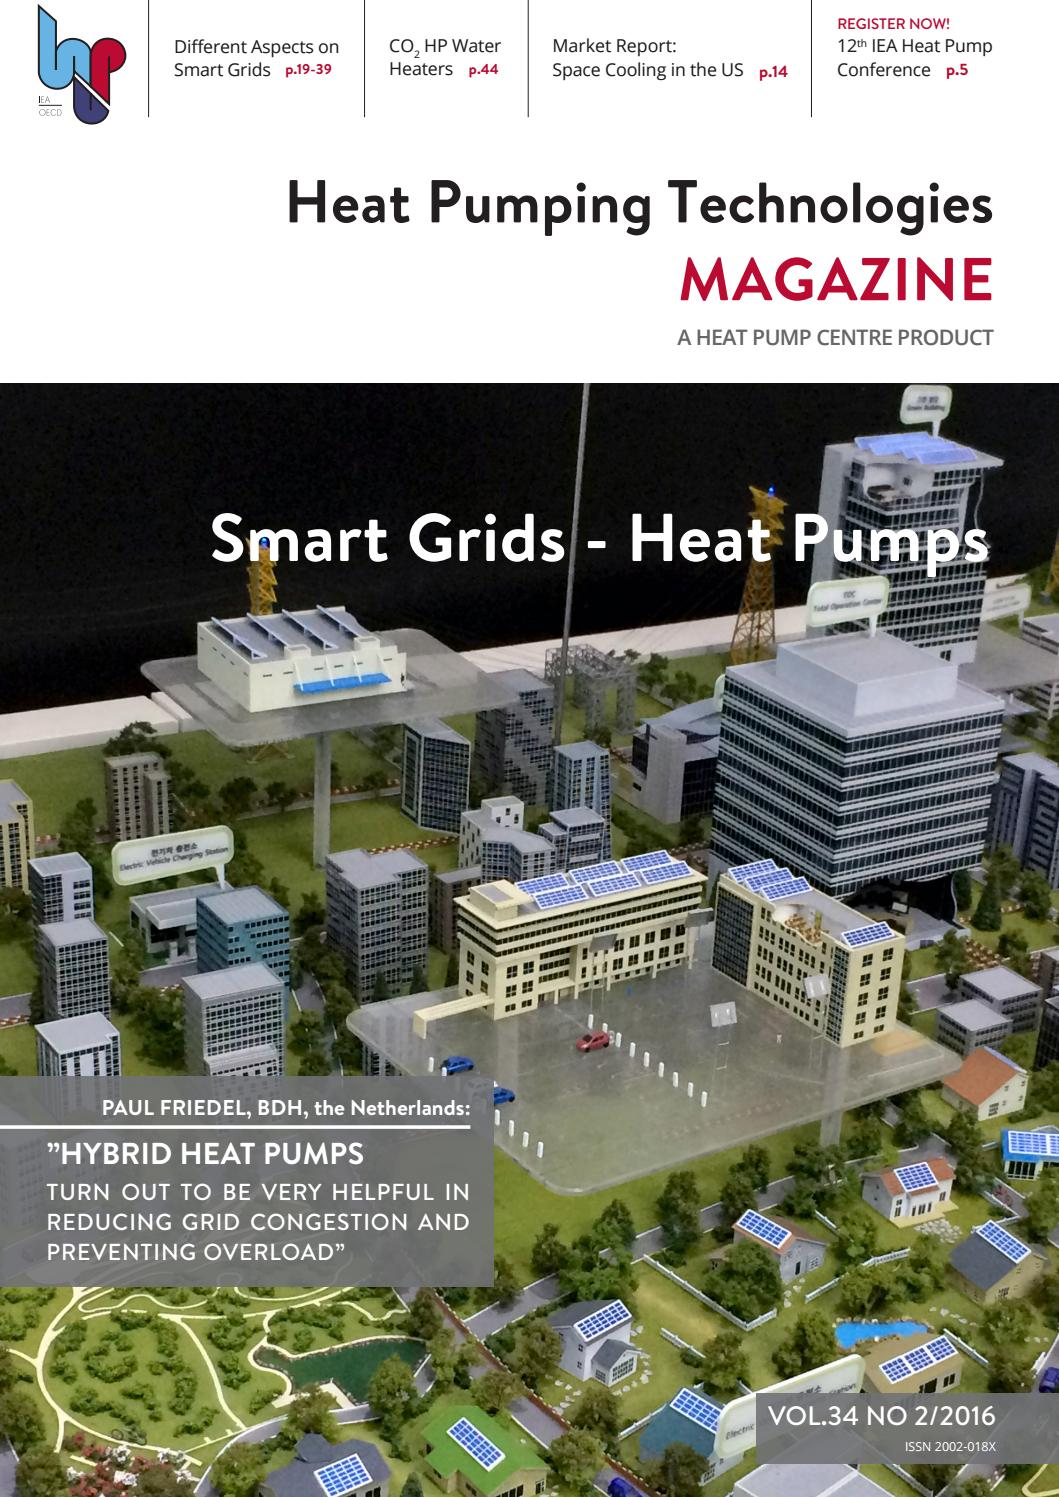 Pool Wärmepumpe Green Heat Inverter 10 5 Kw Heat Pumping Technologes Magazine Vol 34 No 2 2016